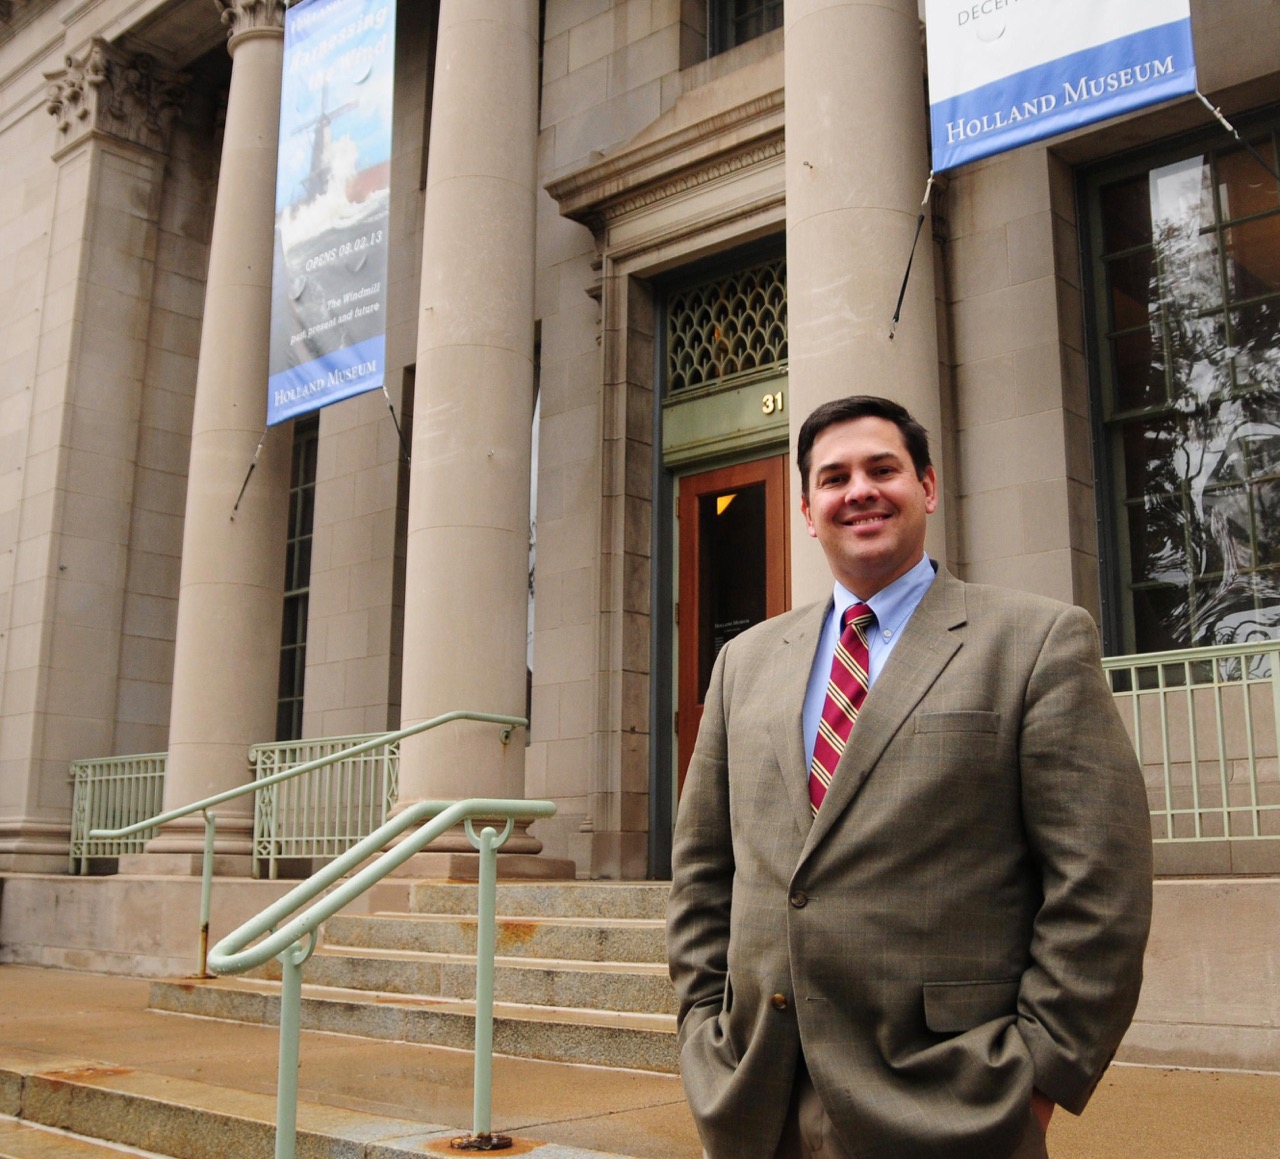 Chris Shires leaving museum in Holland, Michigan, for executive post at Gilmore   Gilmore museum photo